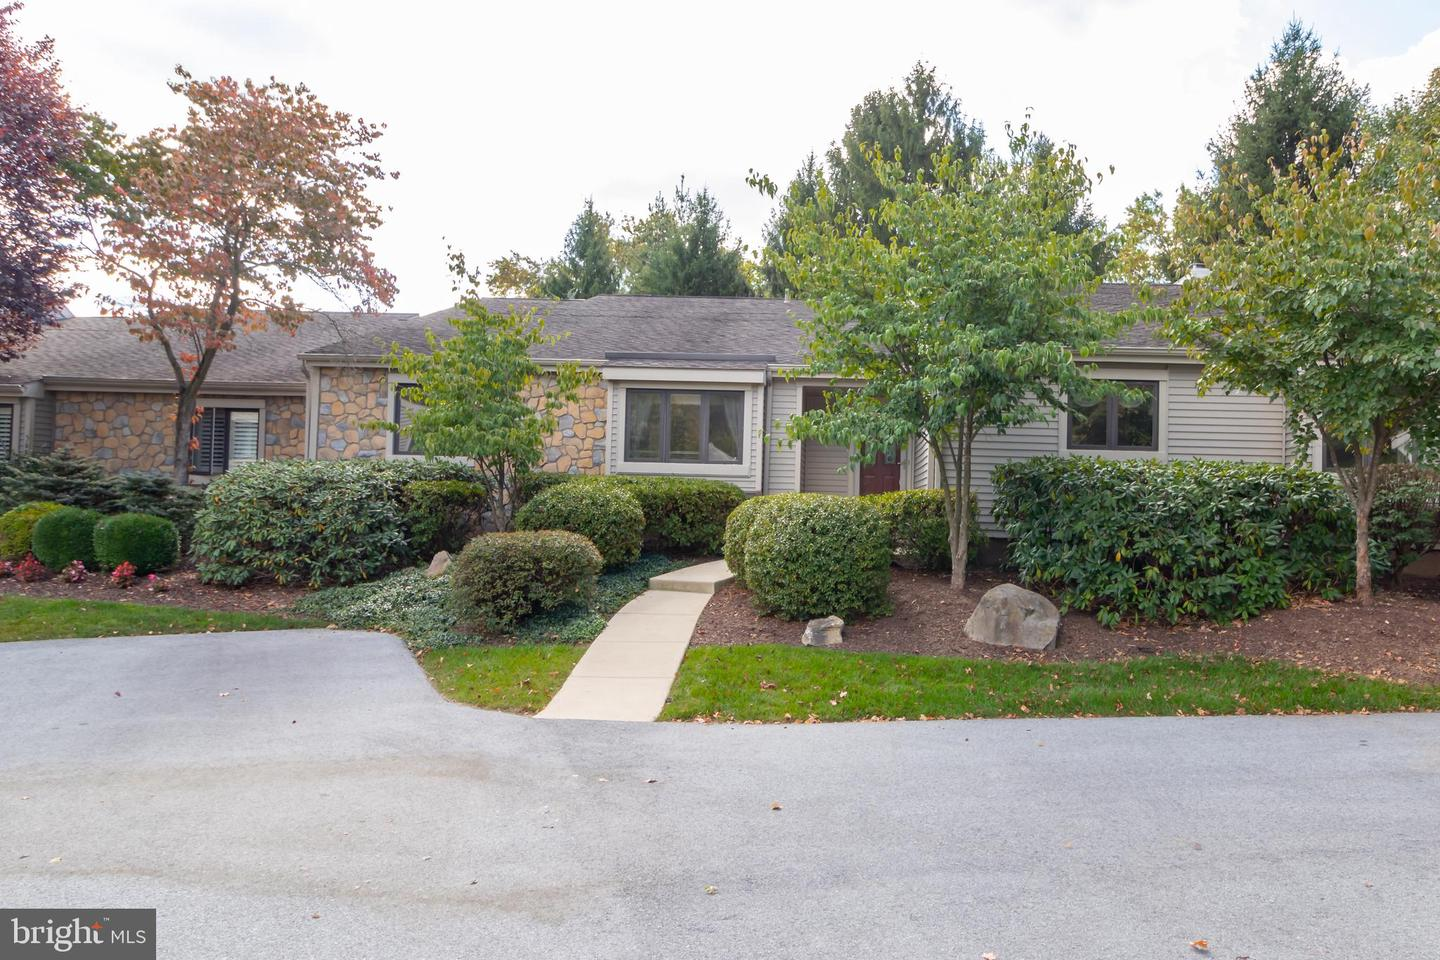 569 Franklin Way West Chester, PA 19380